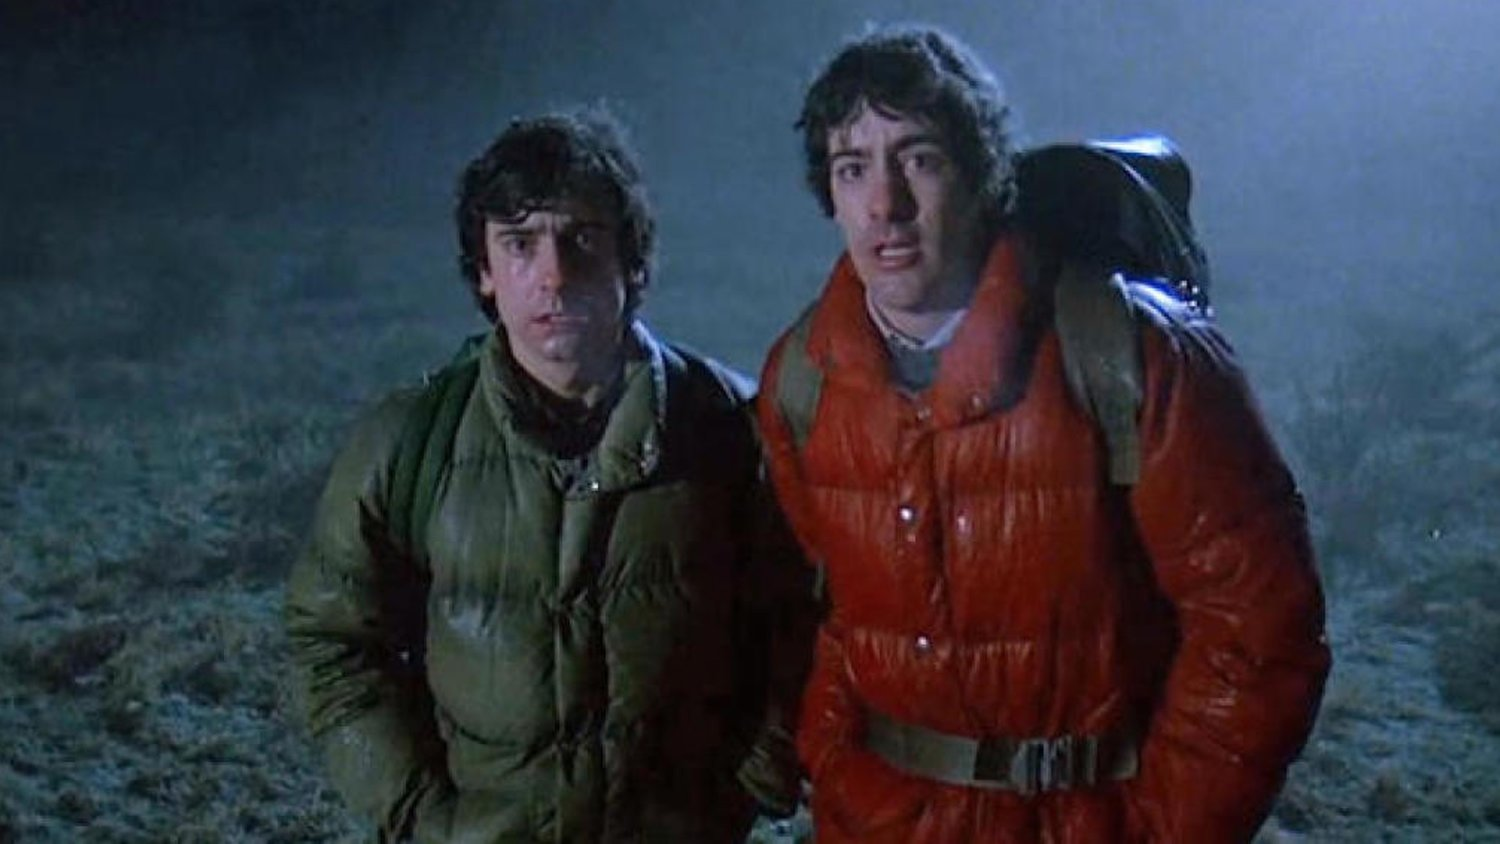 The An American Werewolf In London Remake Will Be A Modern Take On